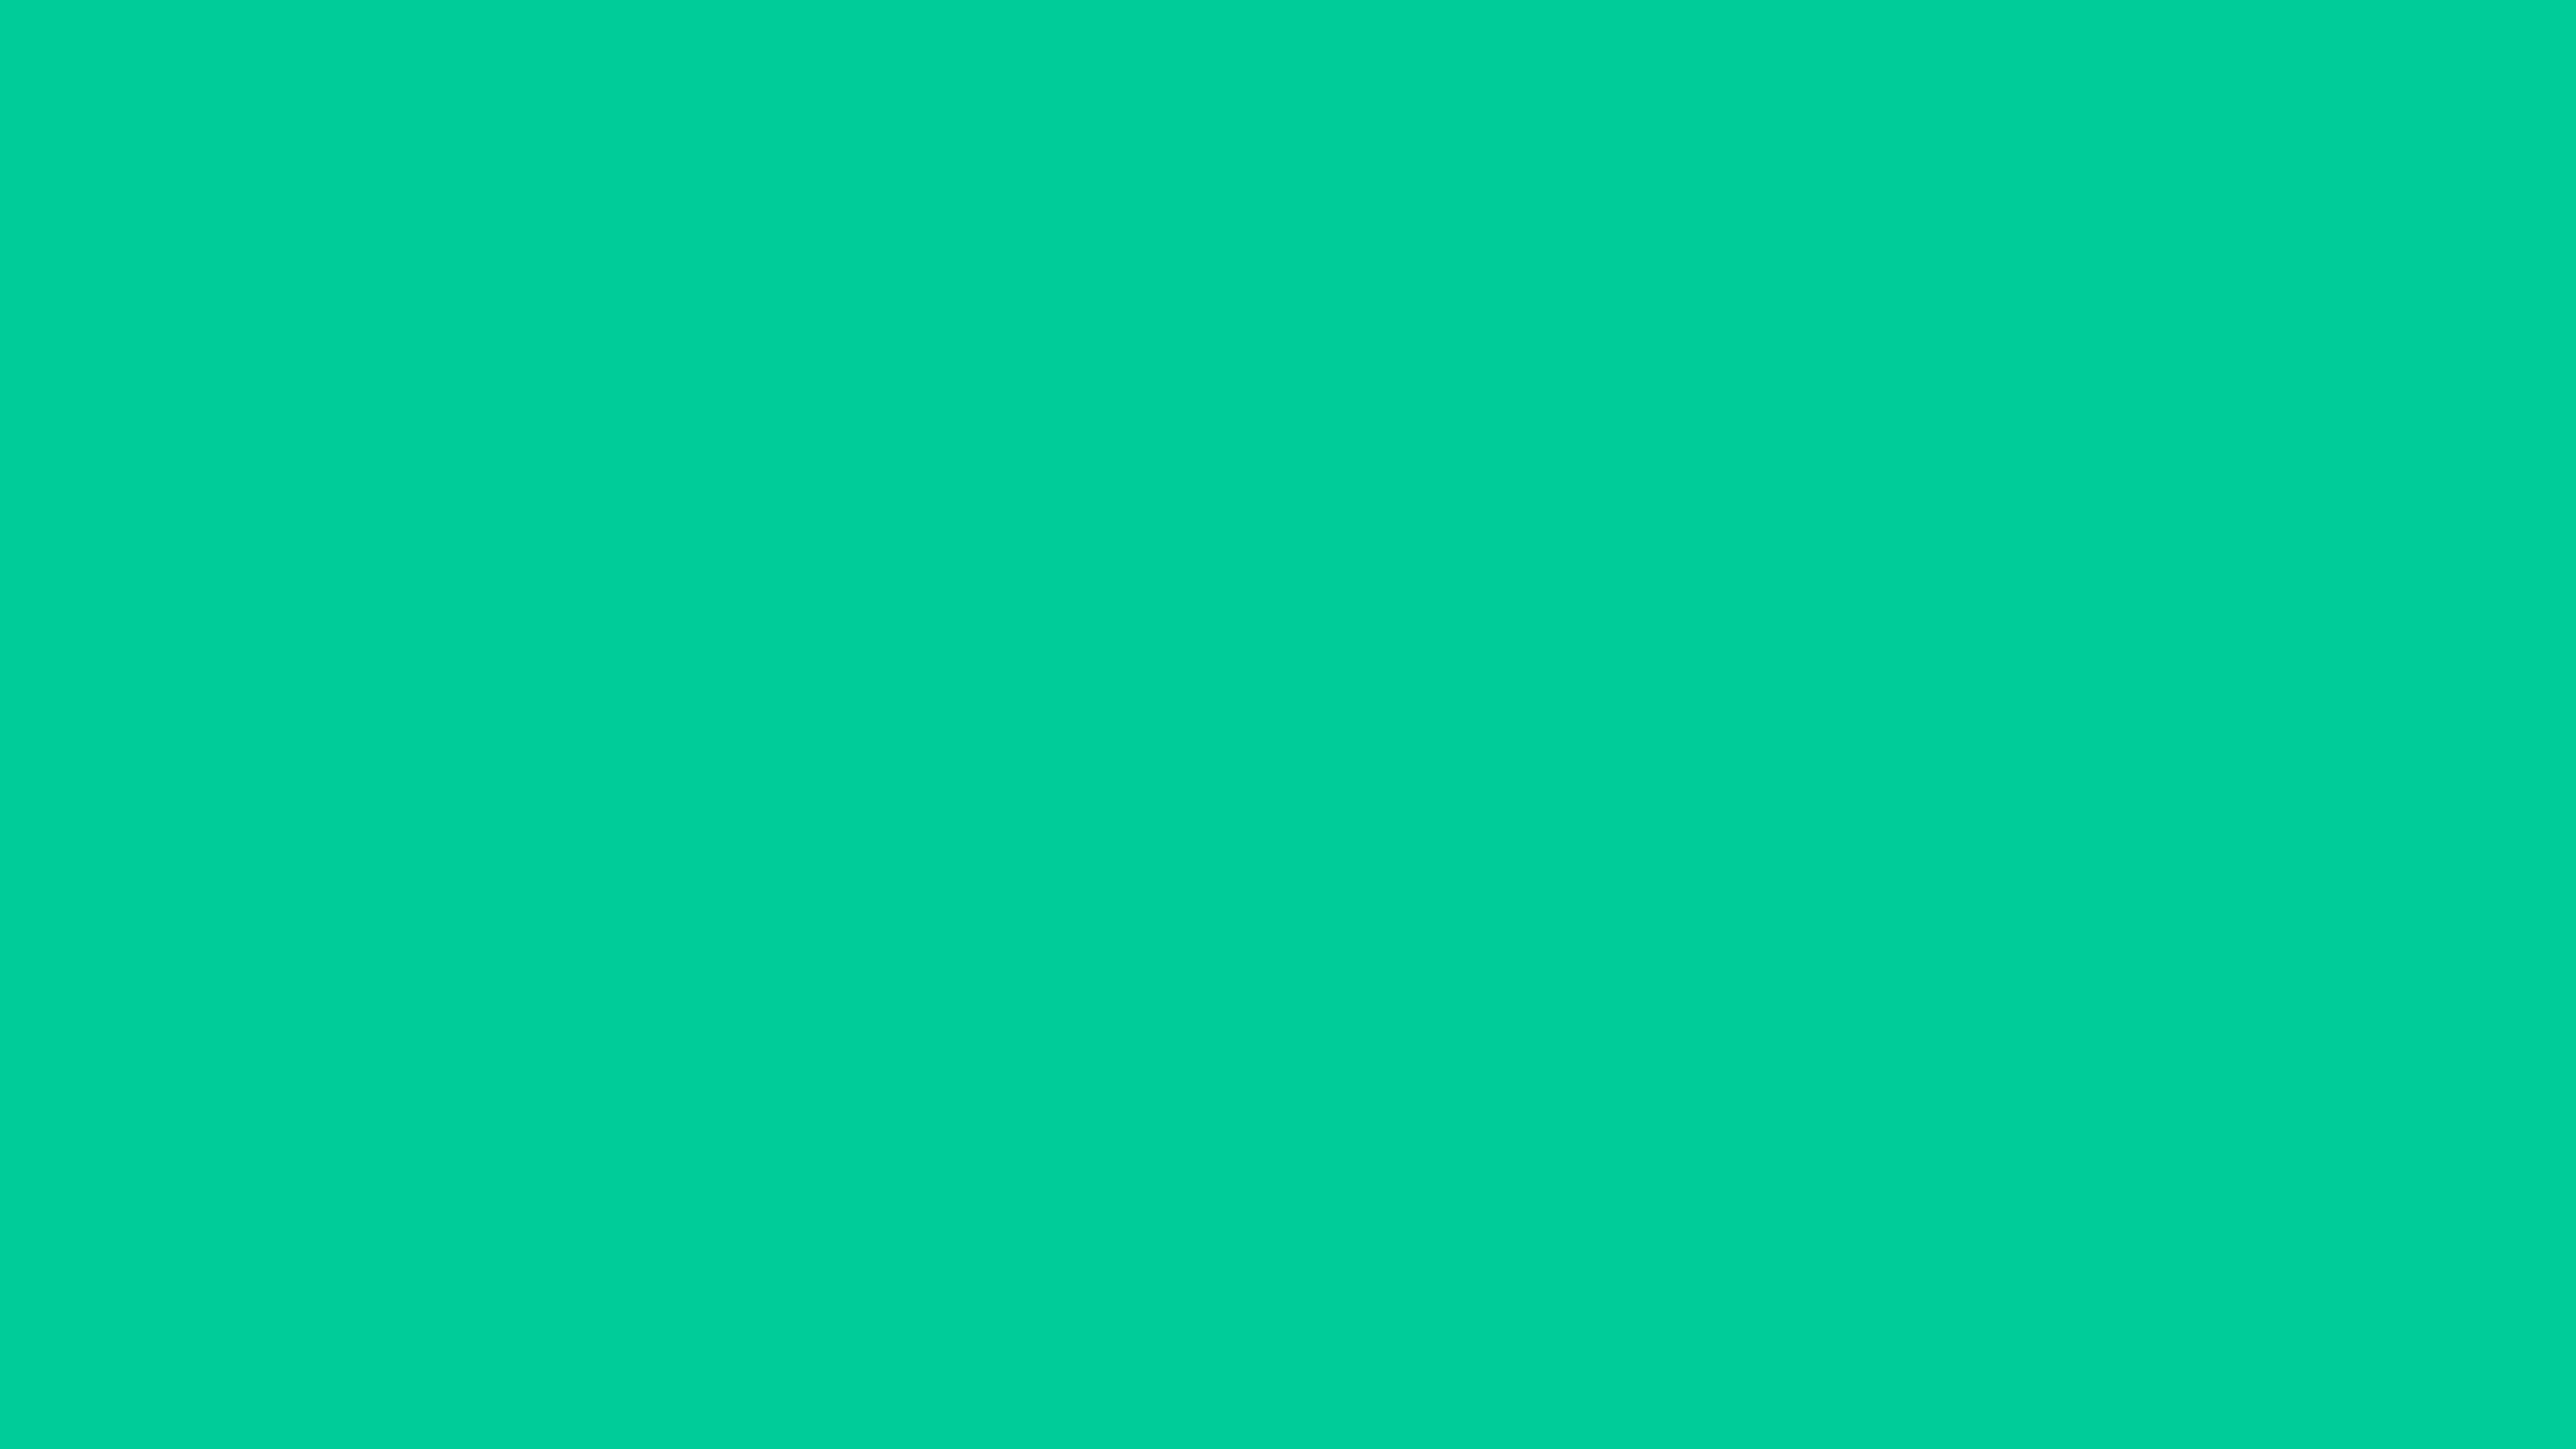 4096x2304 Caribbean Green Solid Color Background